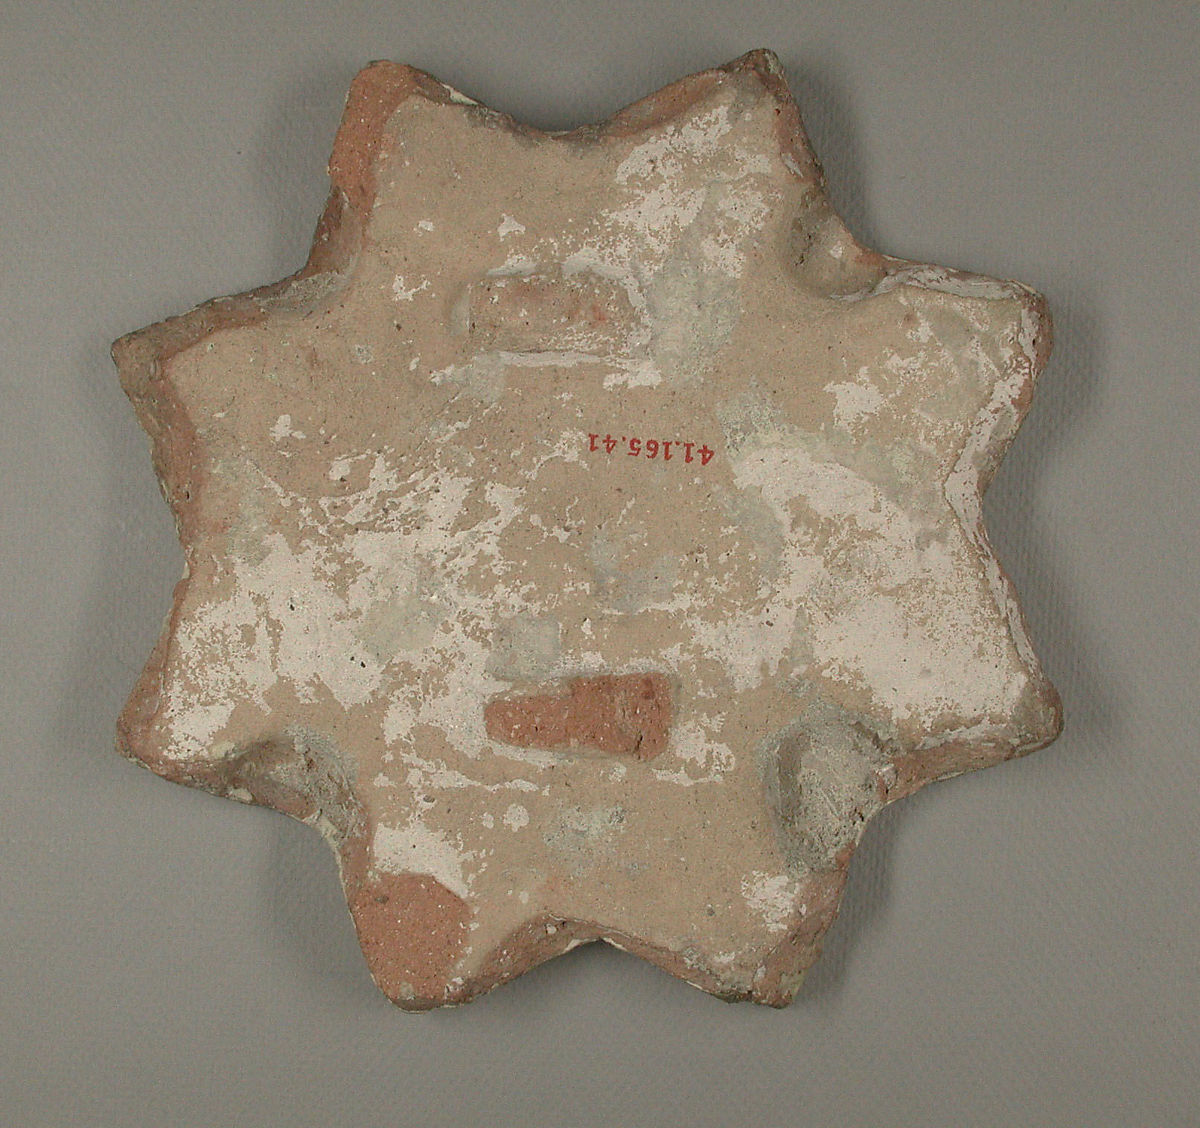 Star-Shaped Tile, Earthenware; luster-painted on opaque white glaze